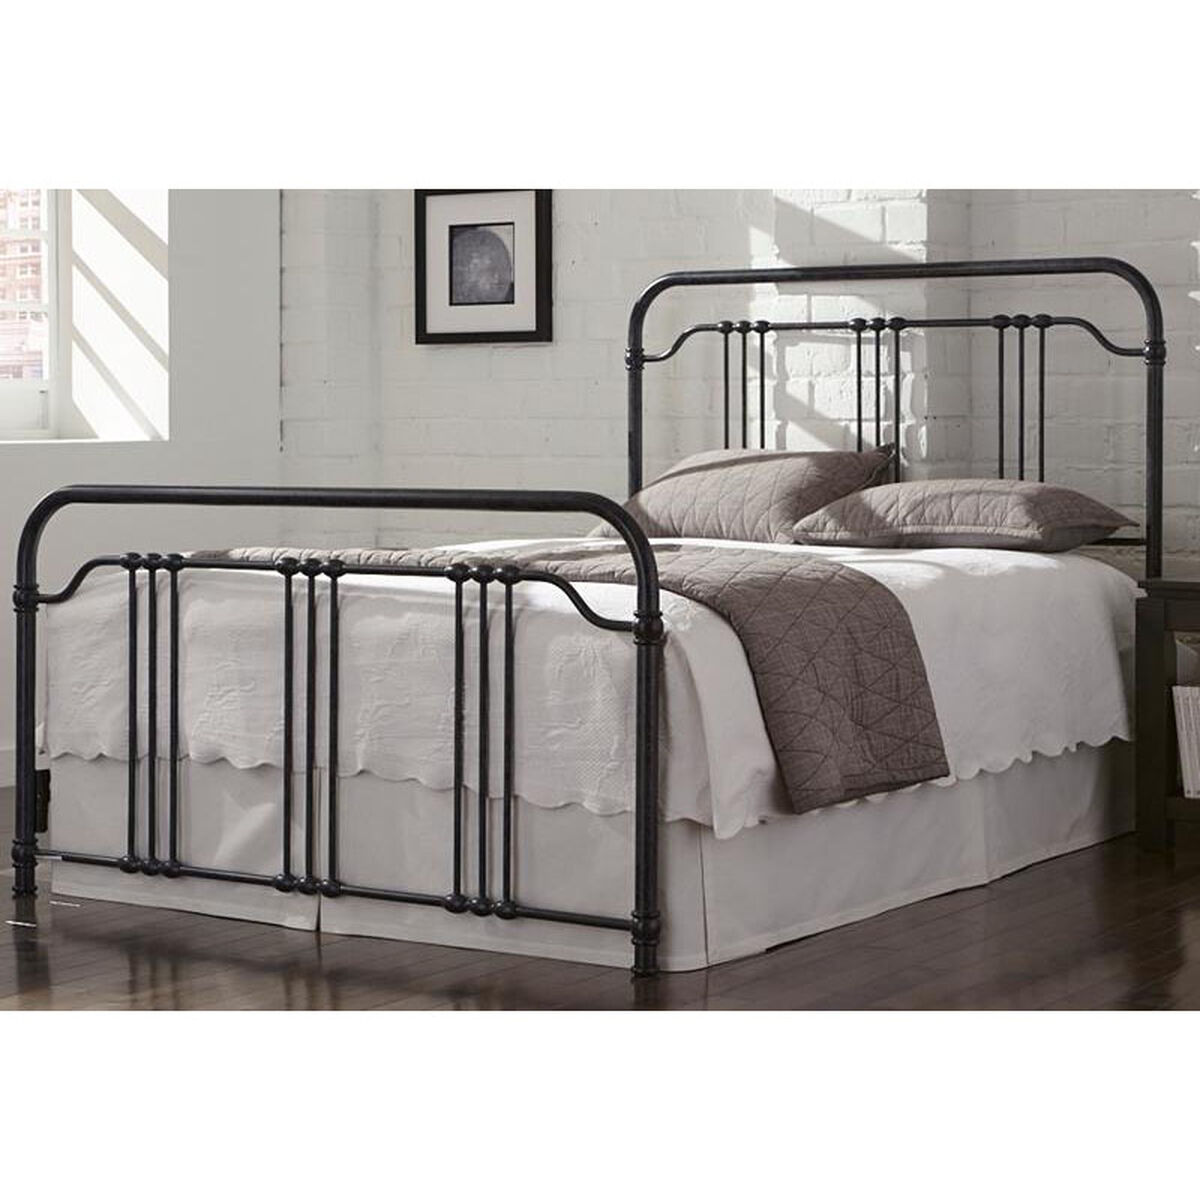 Our Wellesly Traditional Metal Bed With Frame Queen Marbled Navy Is On Now